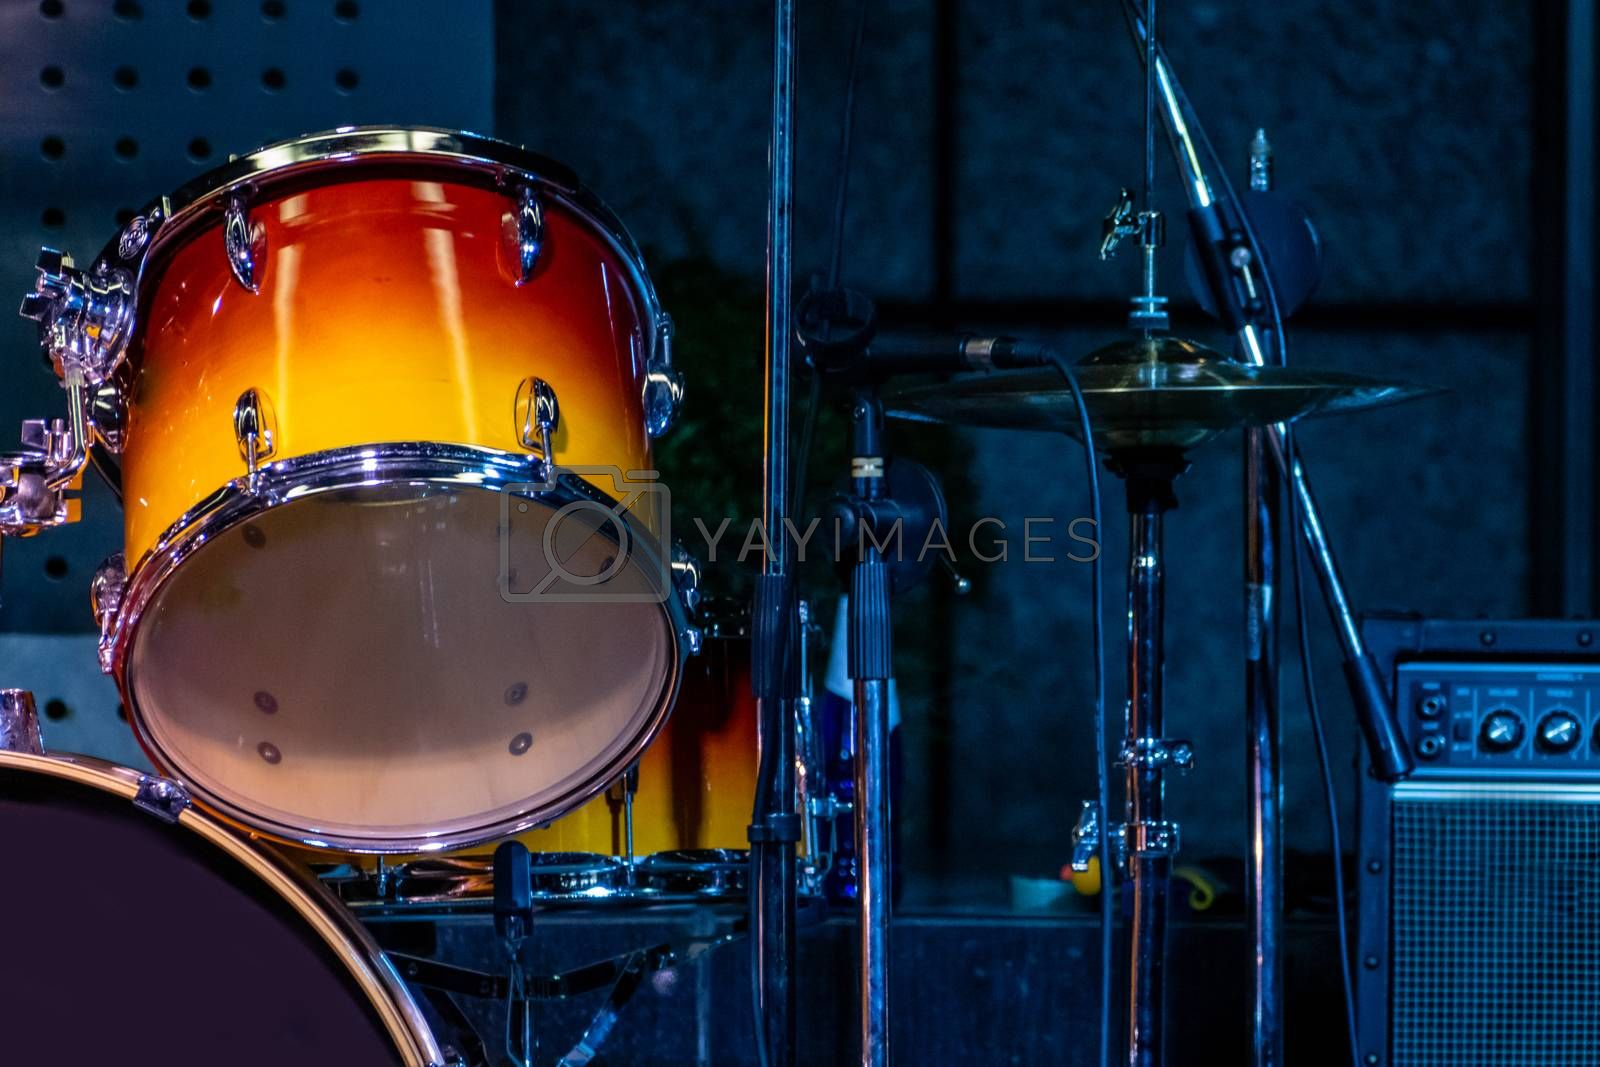 Close-up of drums on stage